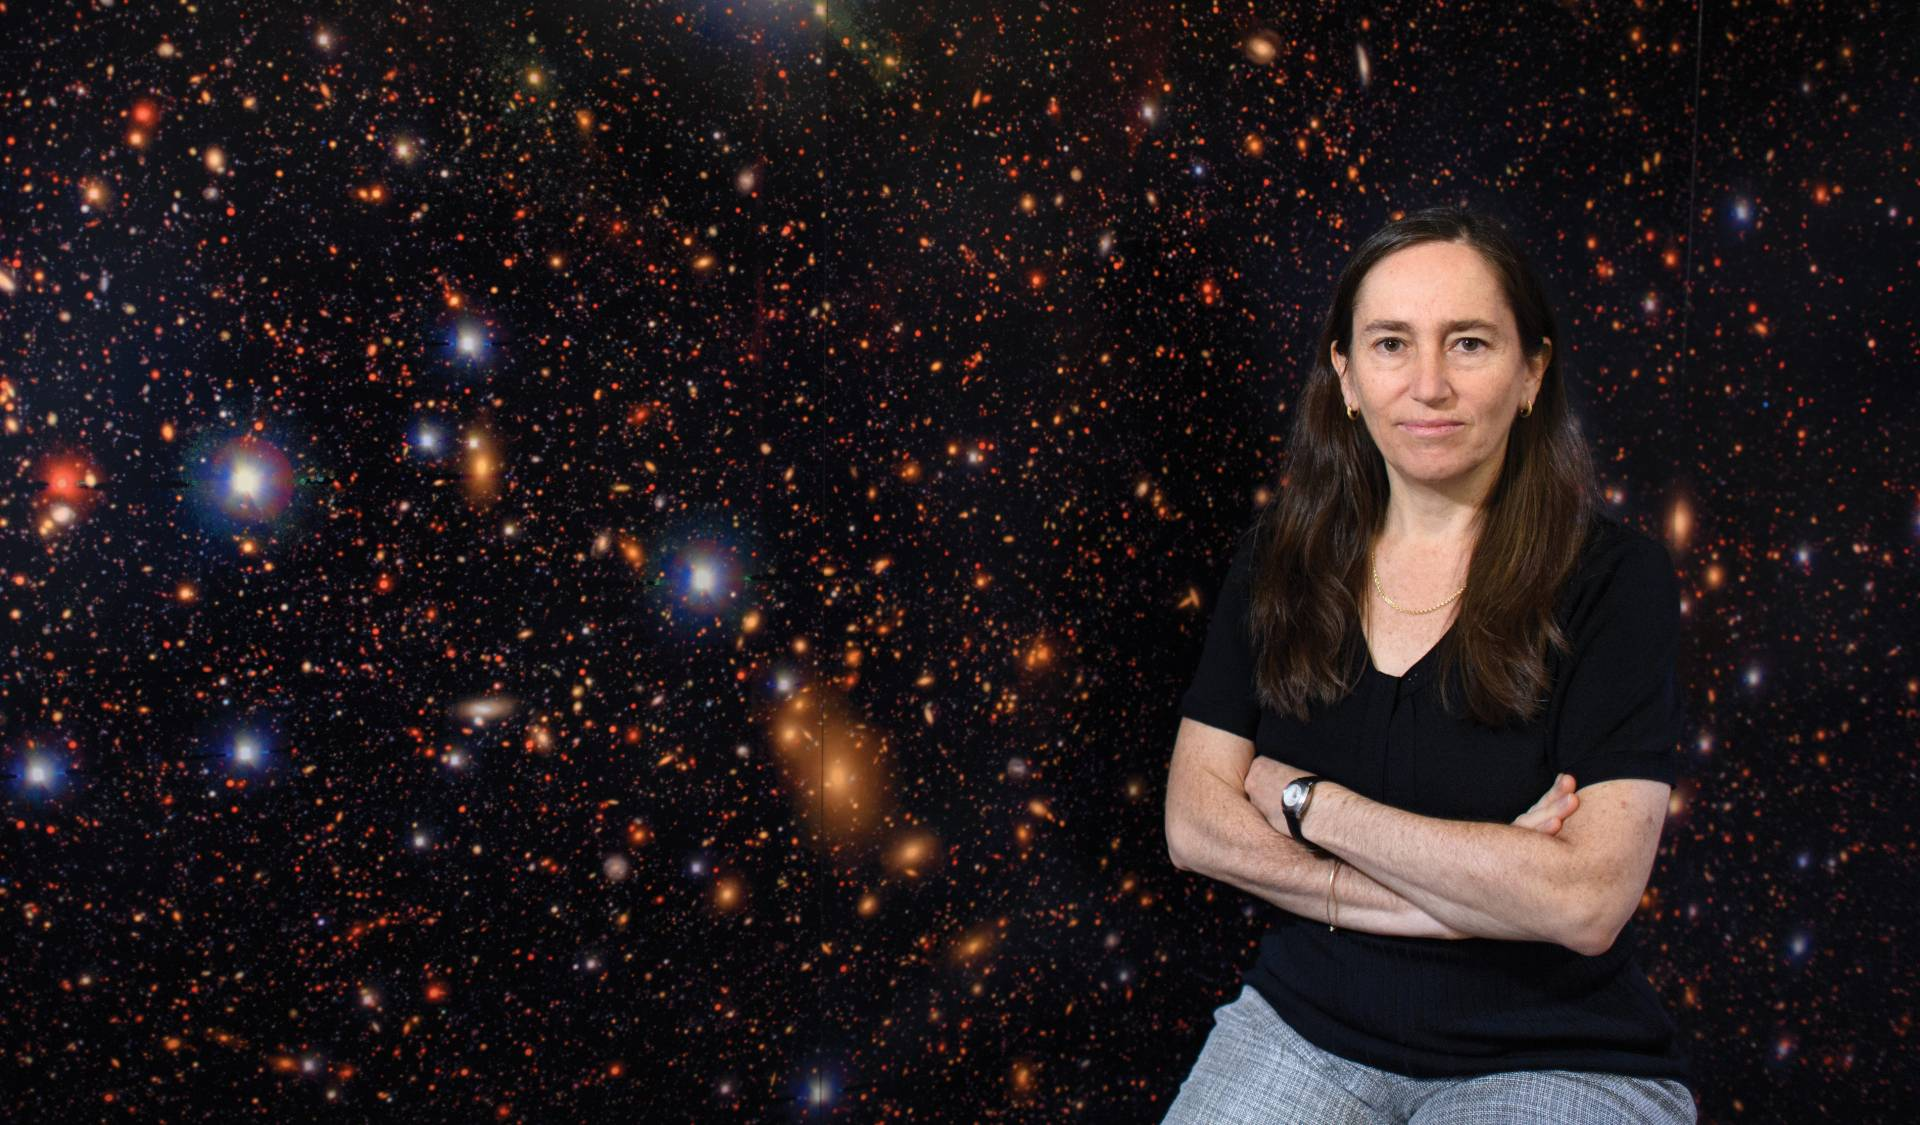 Eve Ostriker sits in front of a satellite photo of stars and planets